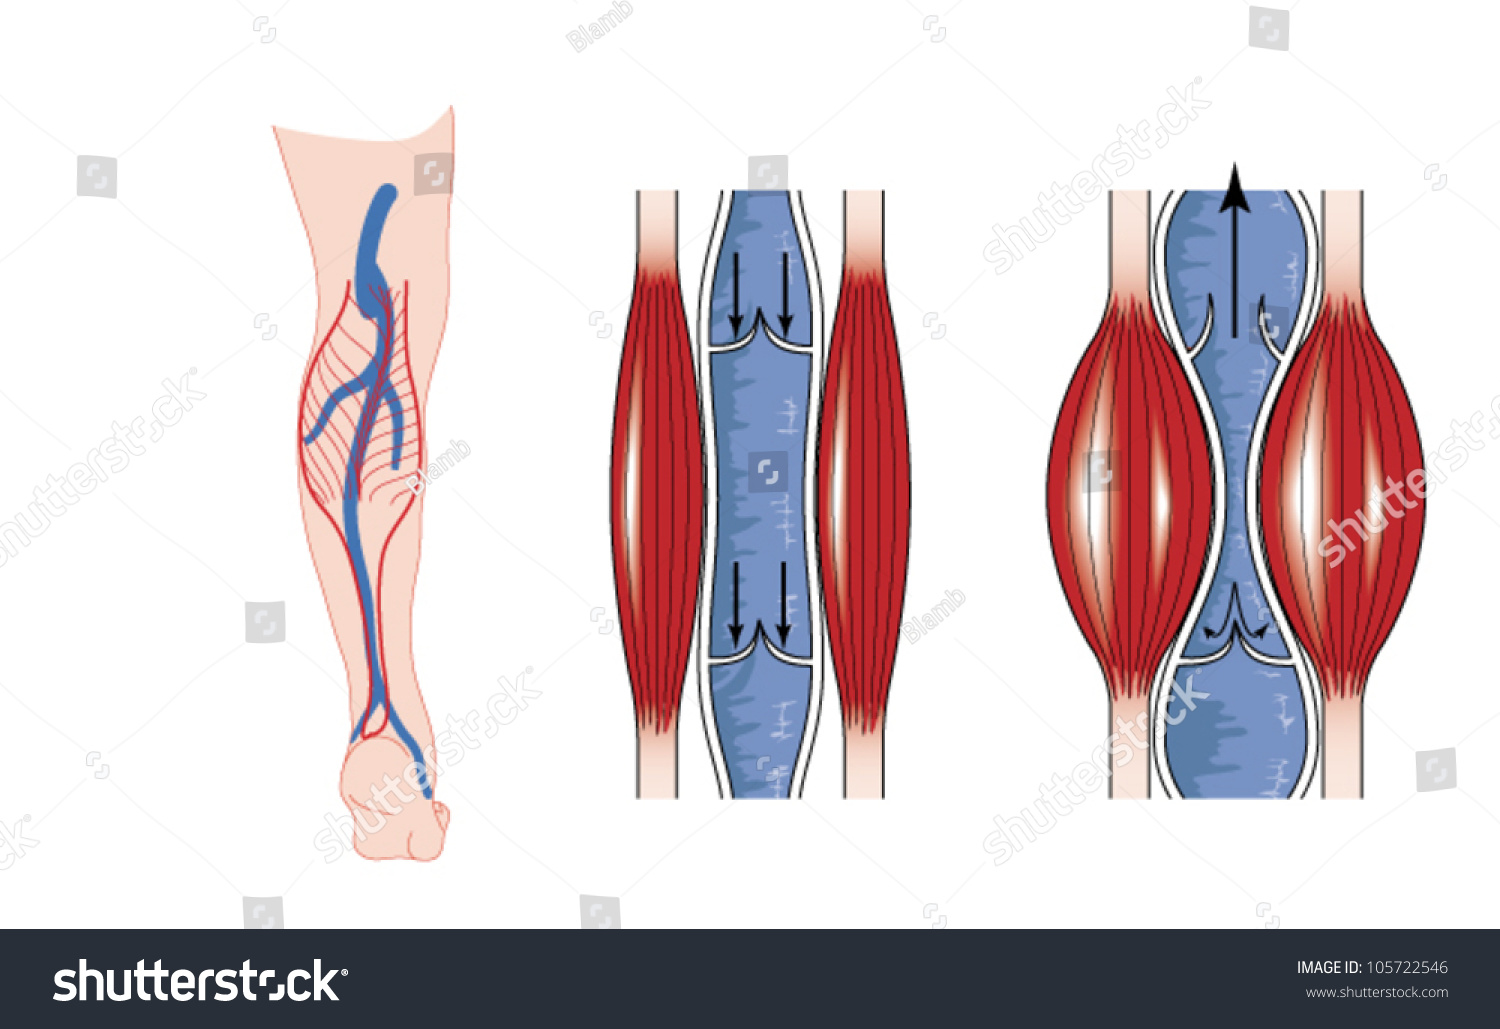 Drawing show action calf muscle pumping stock vector 105722546 drawing to show the action of the calf muscle in pumping blood from the lower limb pooptronica